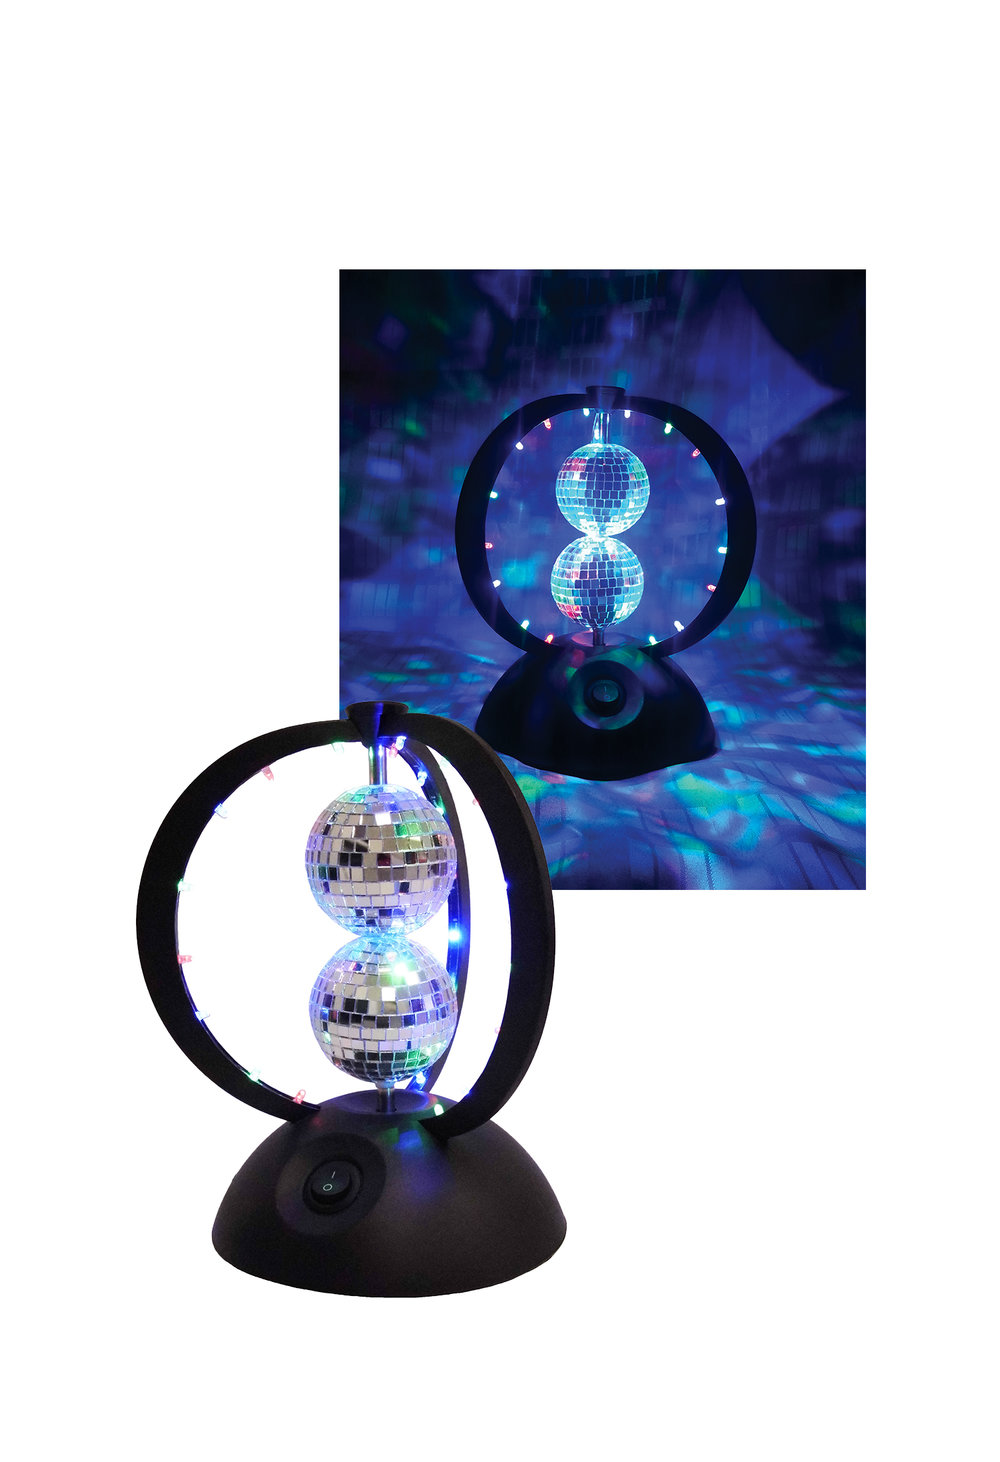 V0238  TWIN HELIX  - 2 Rotating Mirror Balls with 24 Multi-Colored LEDs